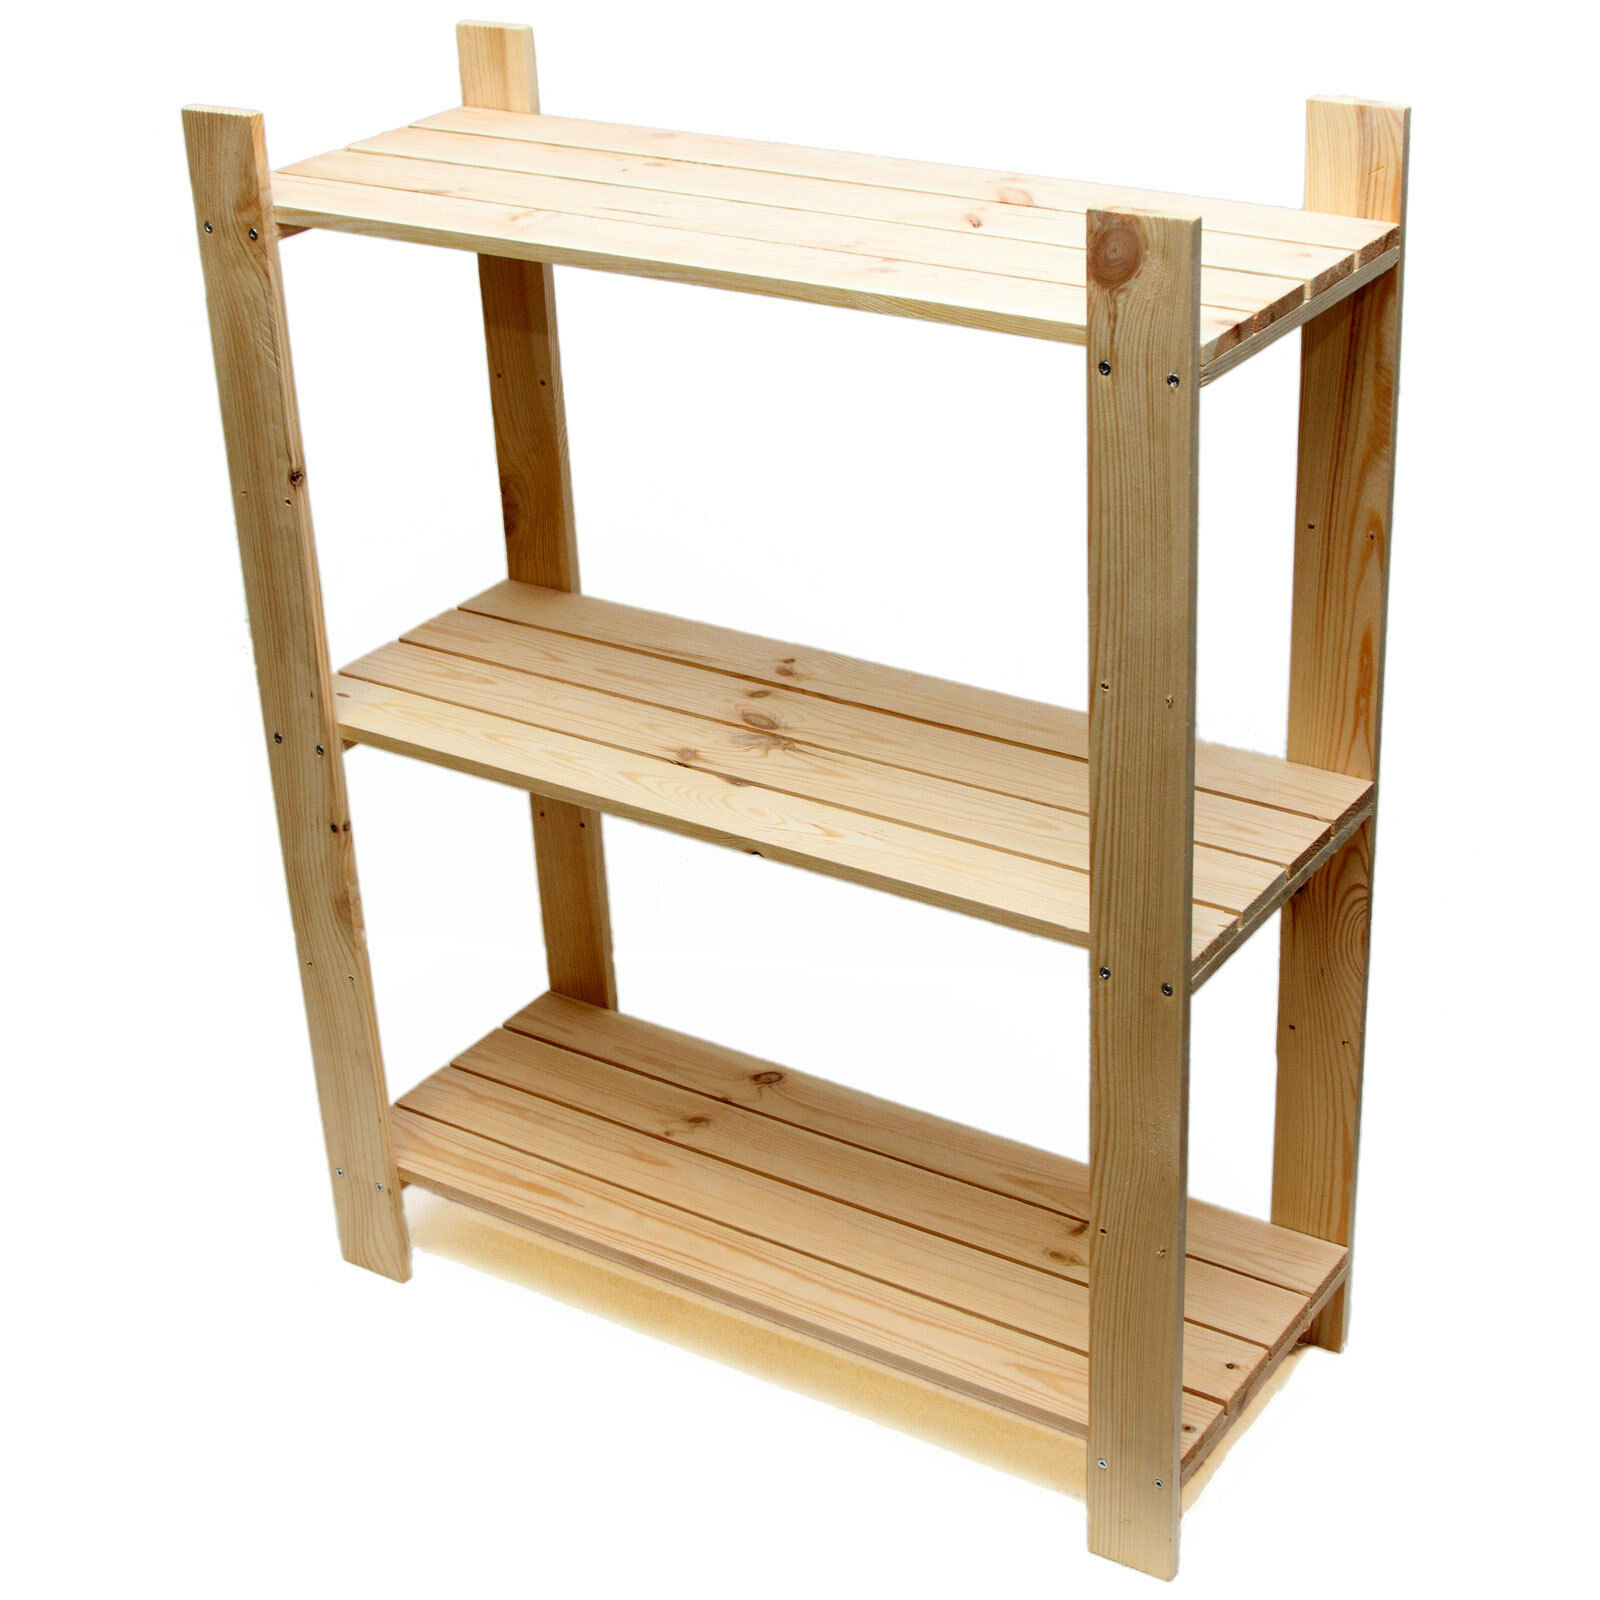 wooden shelf plans free